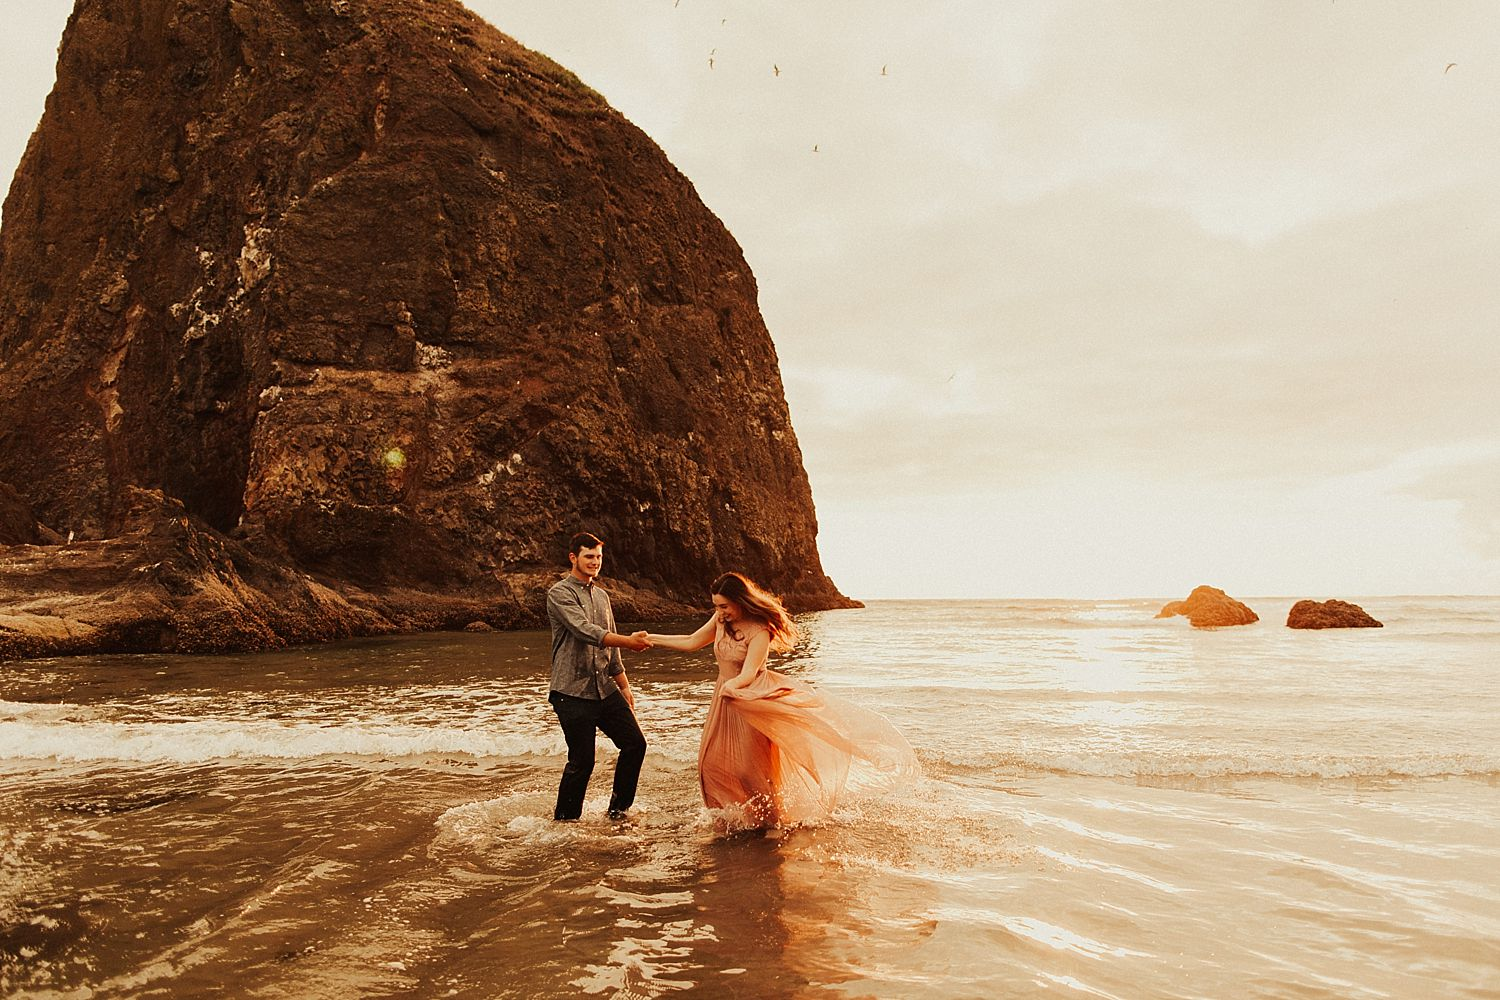 cannon-beach-couples-session_3721.jpg